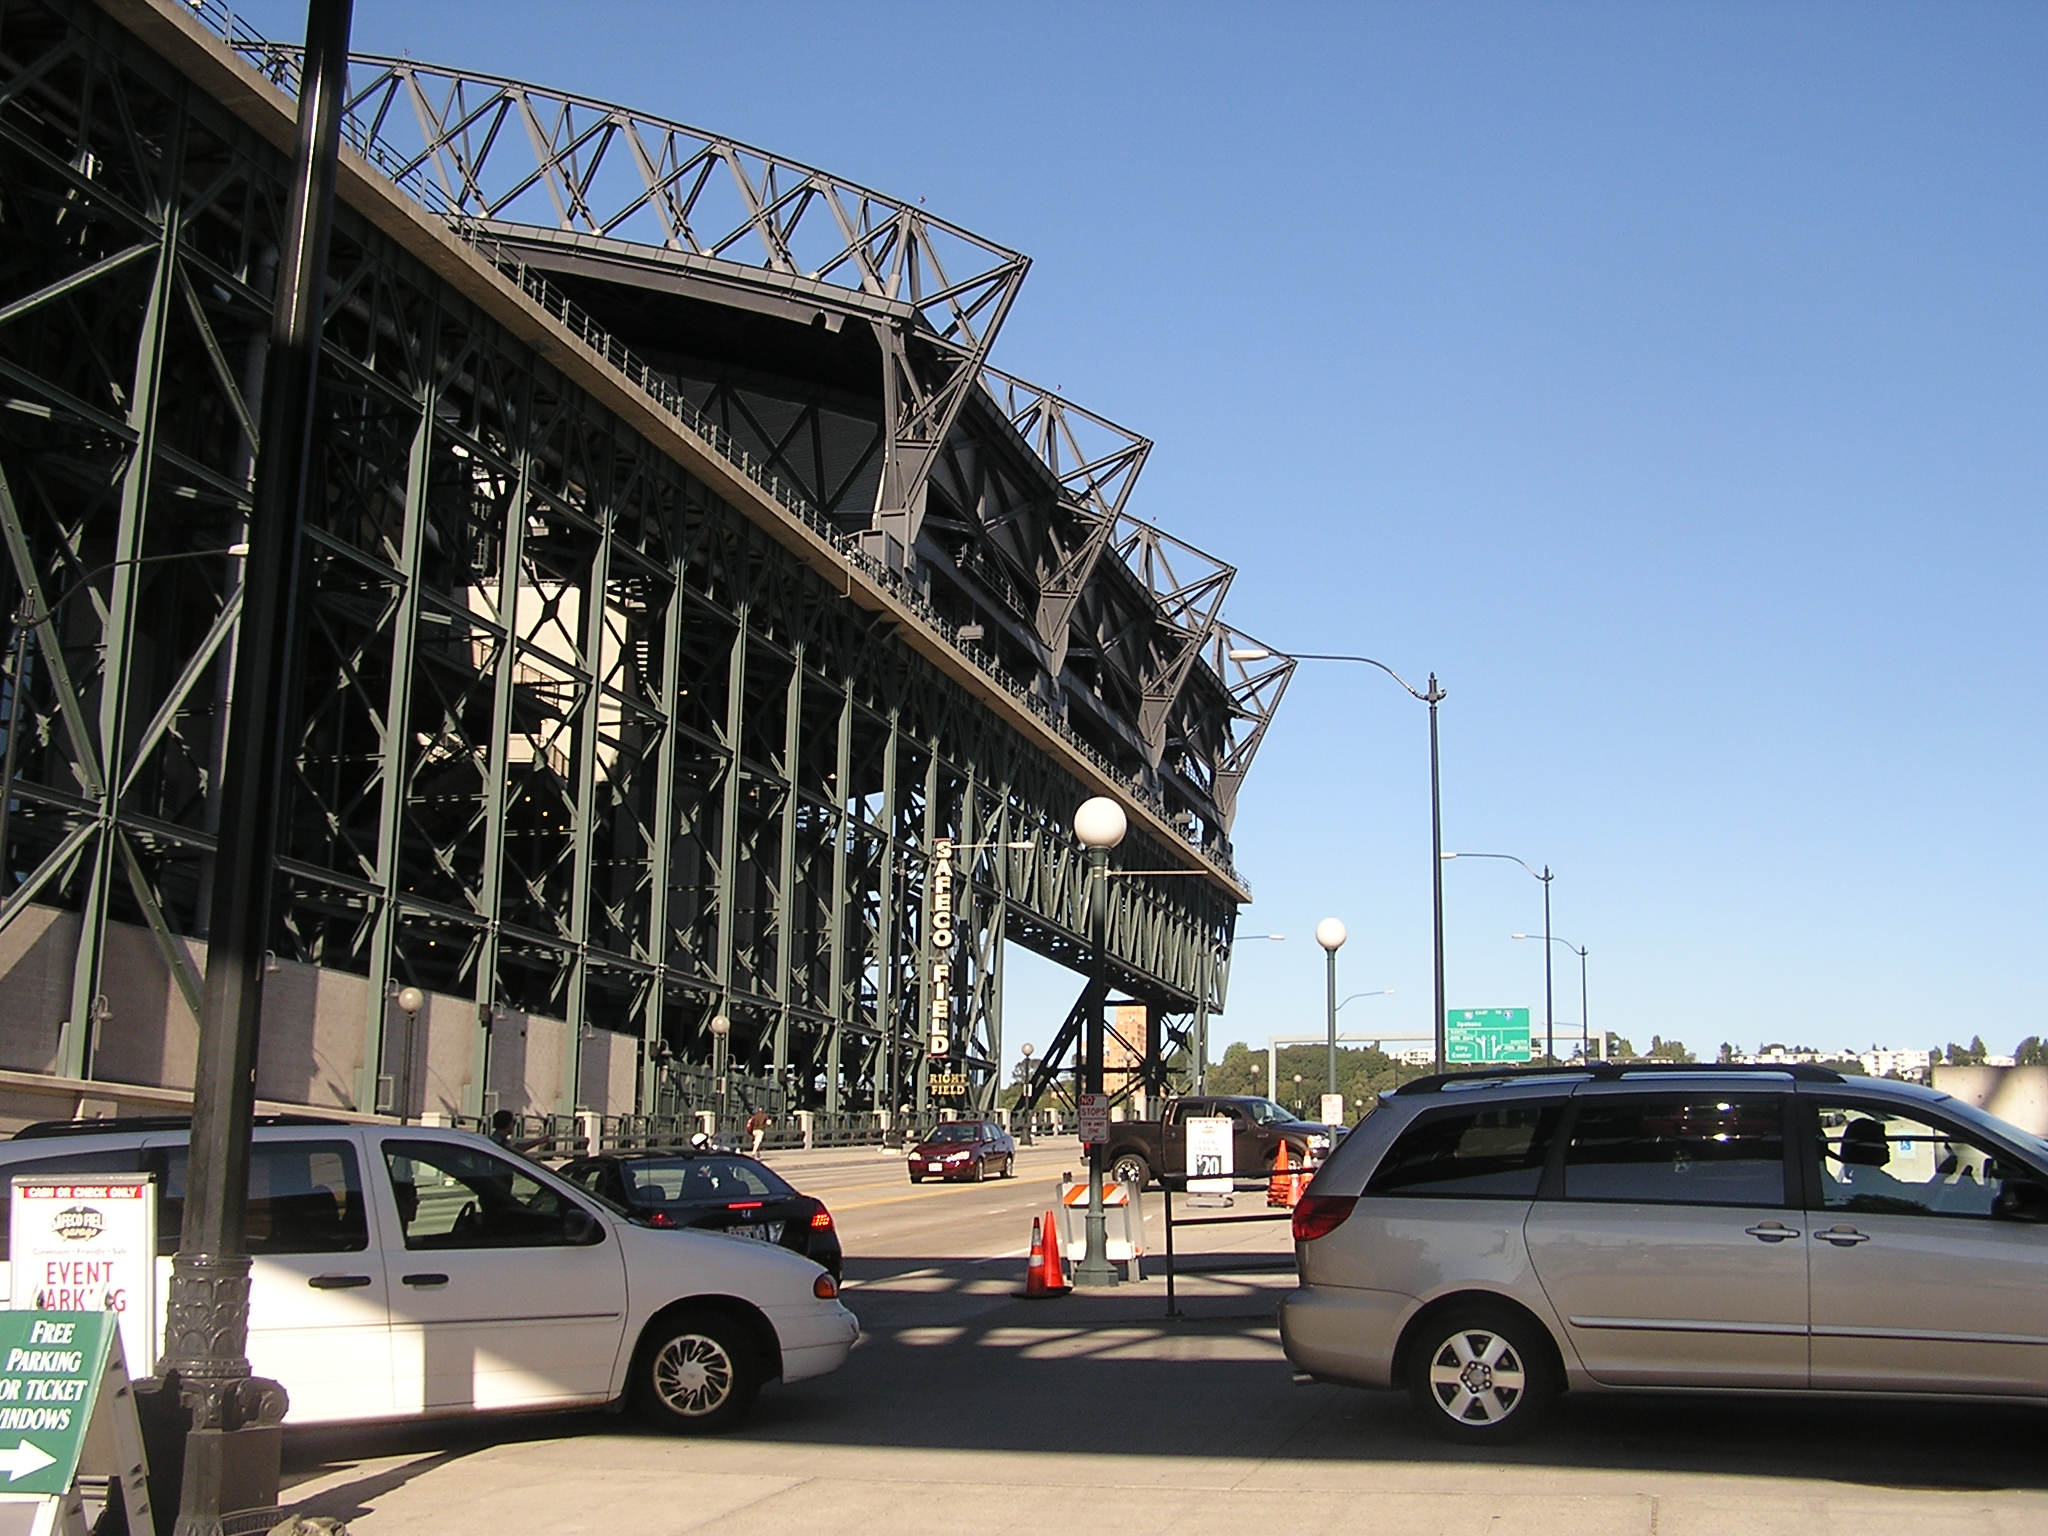 The exterioir from the RF side - Safeco Field